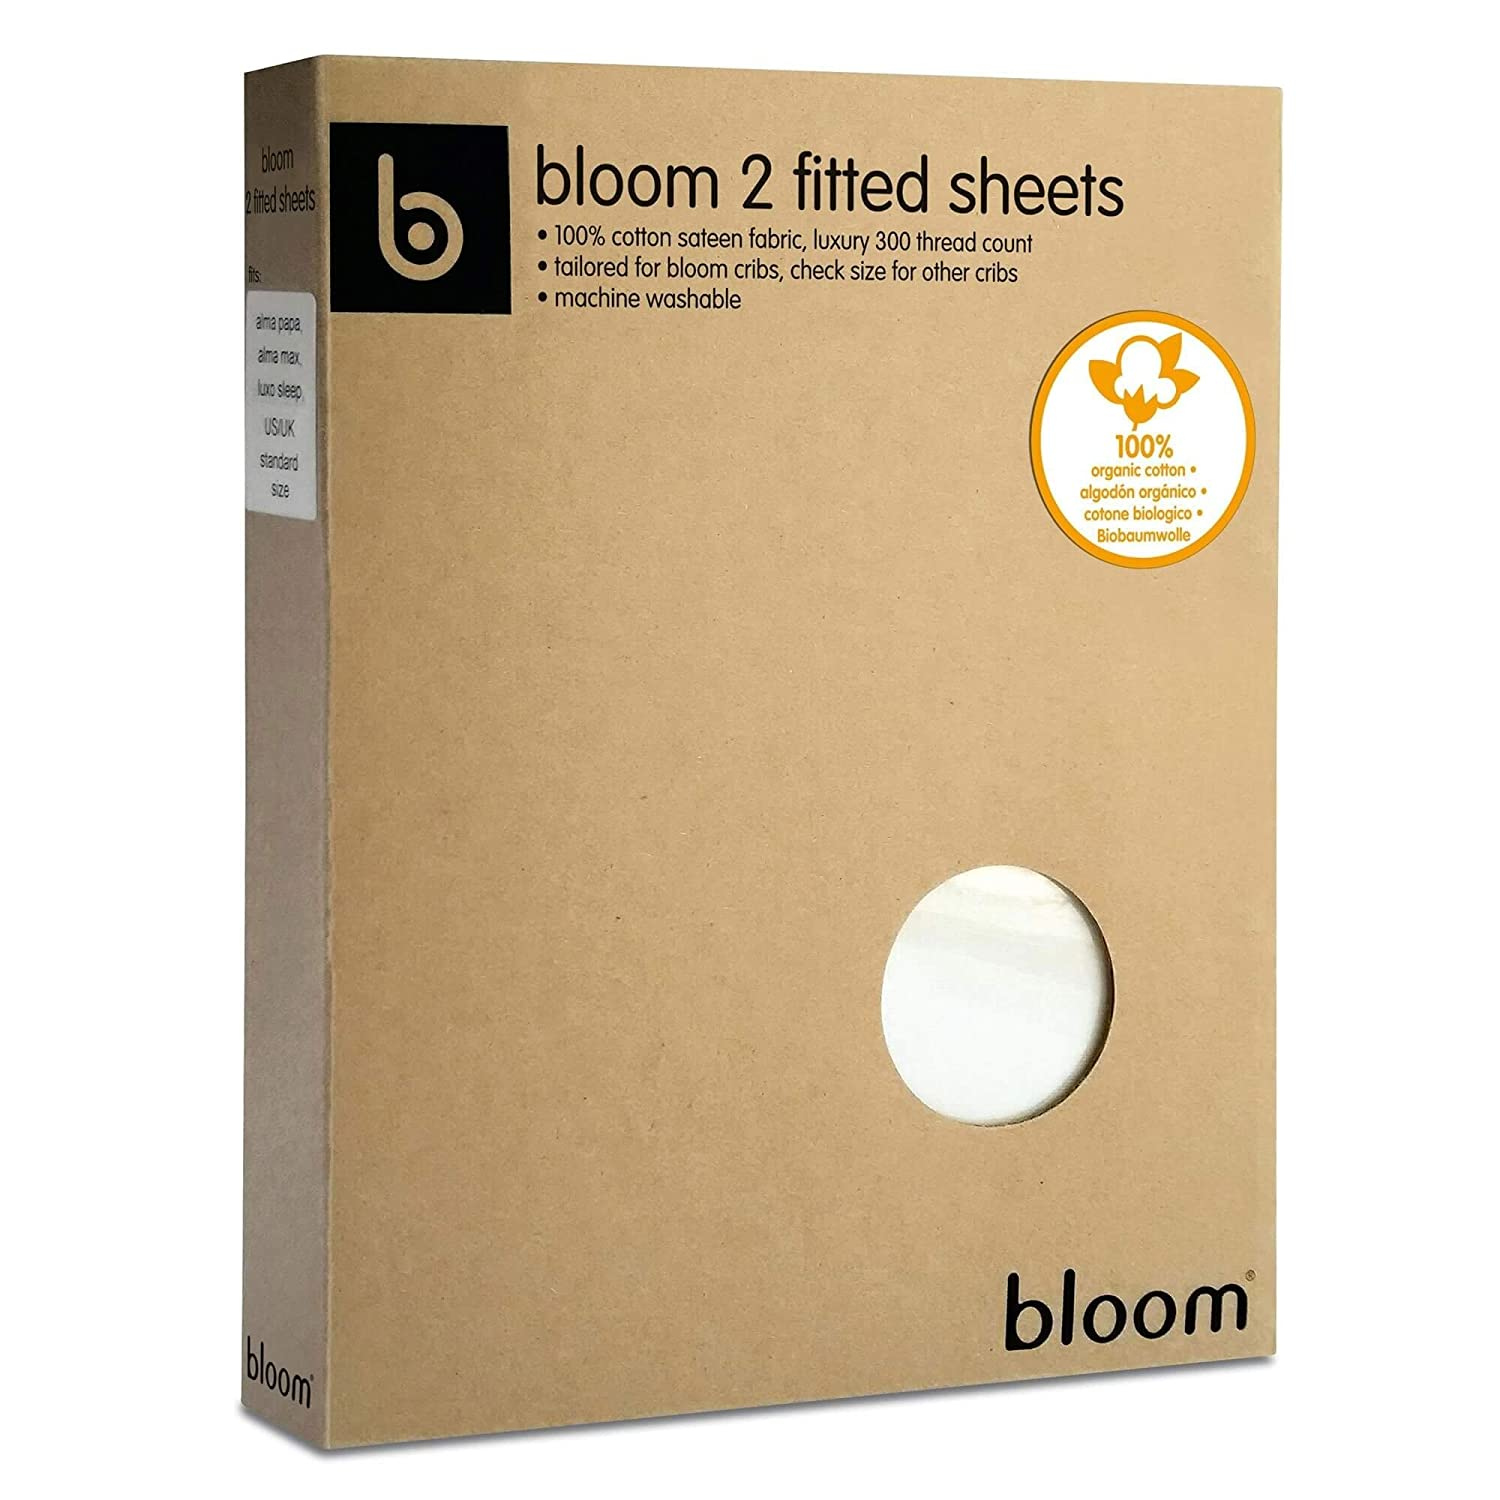 Bloom (Ilinko Ltd) BLOQ 6, Colchón para cuna, 140 x 70 cm, 2 pcs, White (Blanco coco): Amazon.es: Bebé